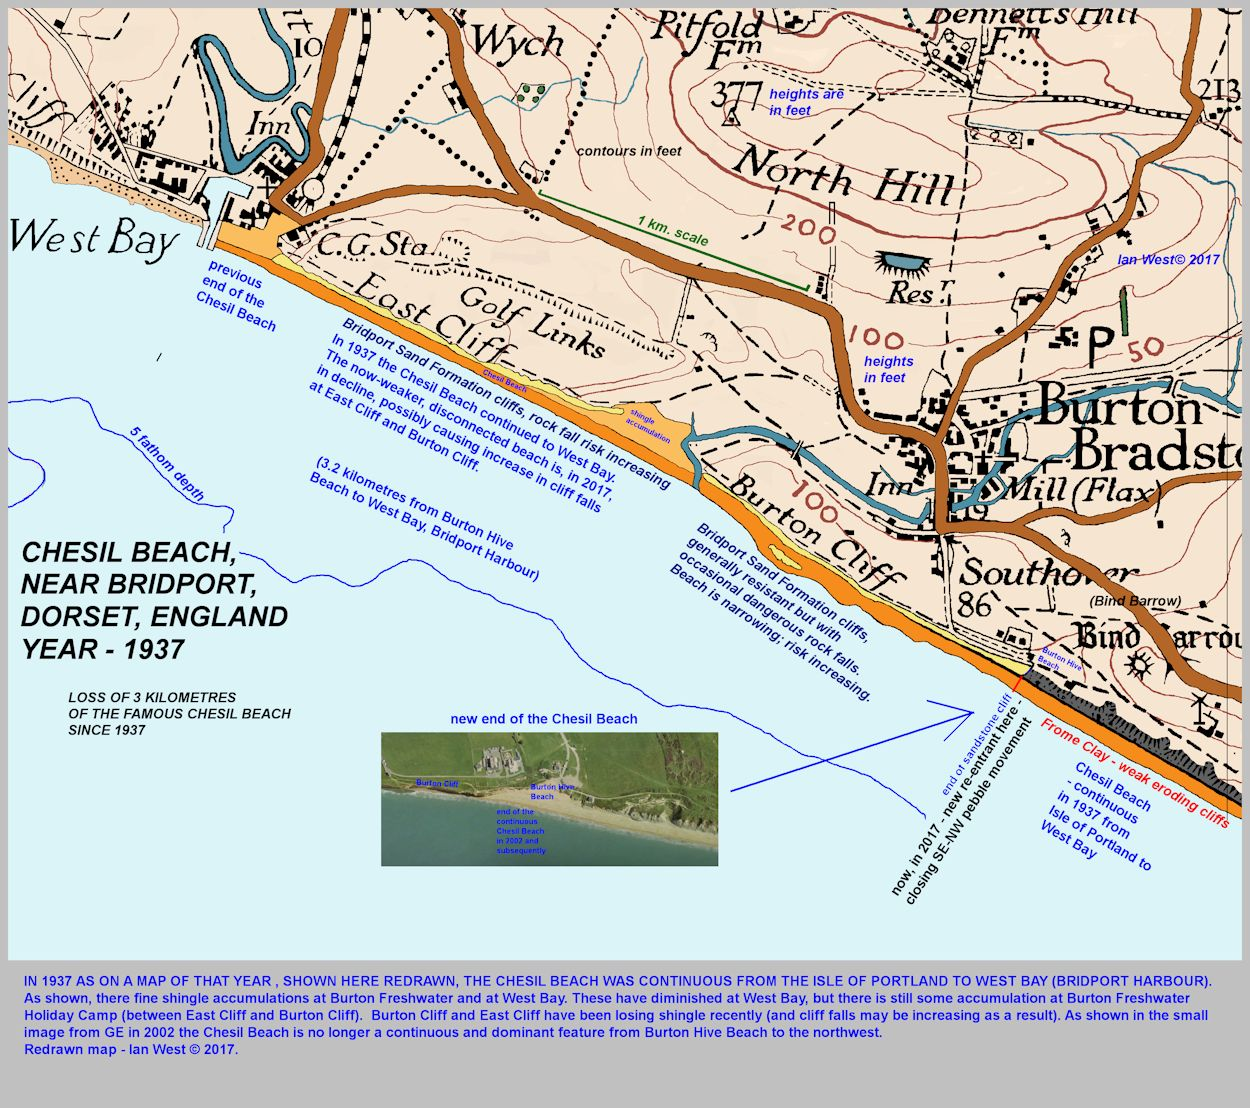 A modified, 1937 topographic map of West Bay, East Cliff and Burton Cliff, near Bridport, Dorset, in 1937, showing the then-continuous Chesil Beach from Portland to West Bay, but now broken at Burton Hive Beach, Ian West 2017